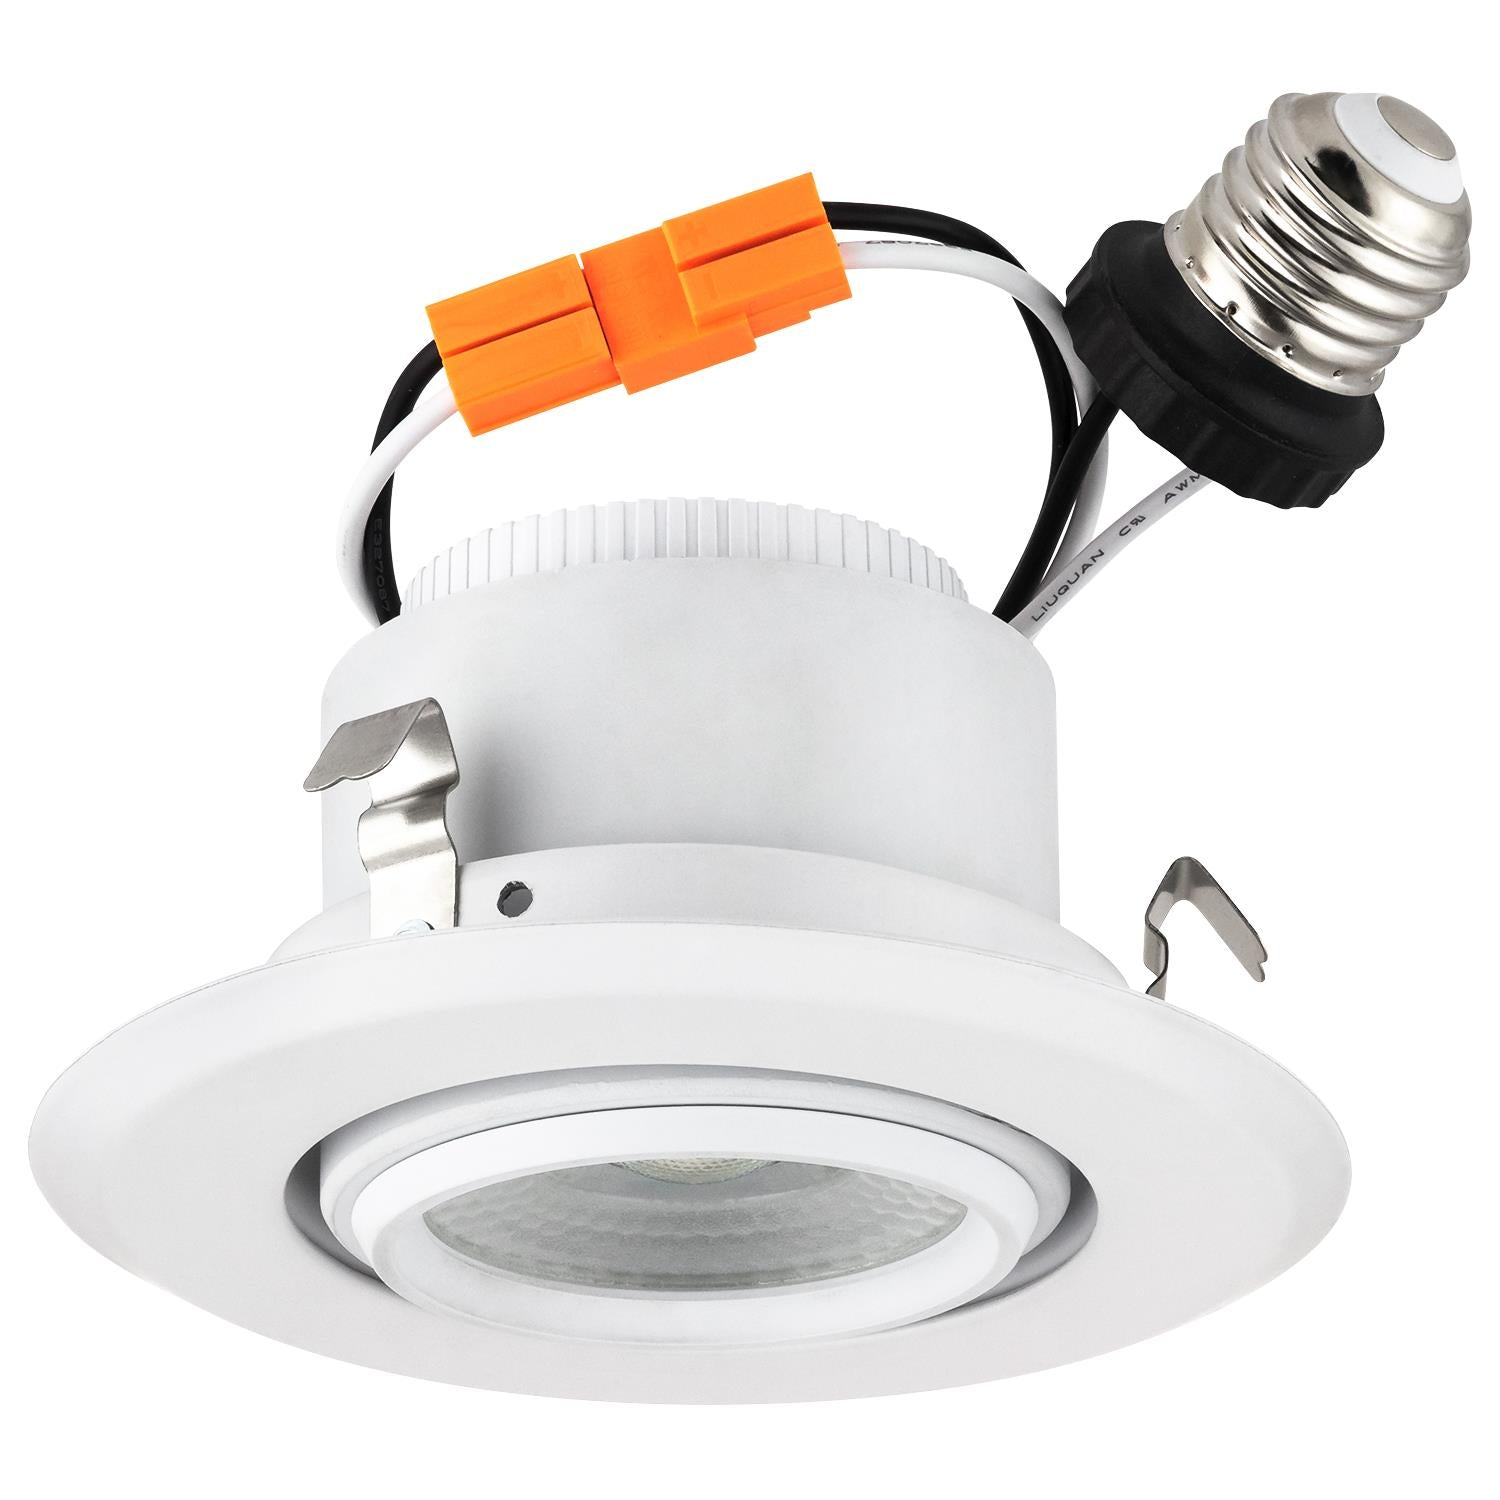 SUNLITE 10W 4in. Round LED Adjustable Retrofit 3000K Warm White